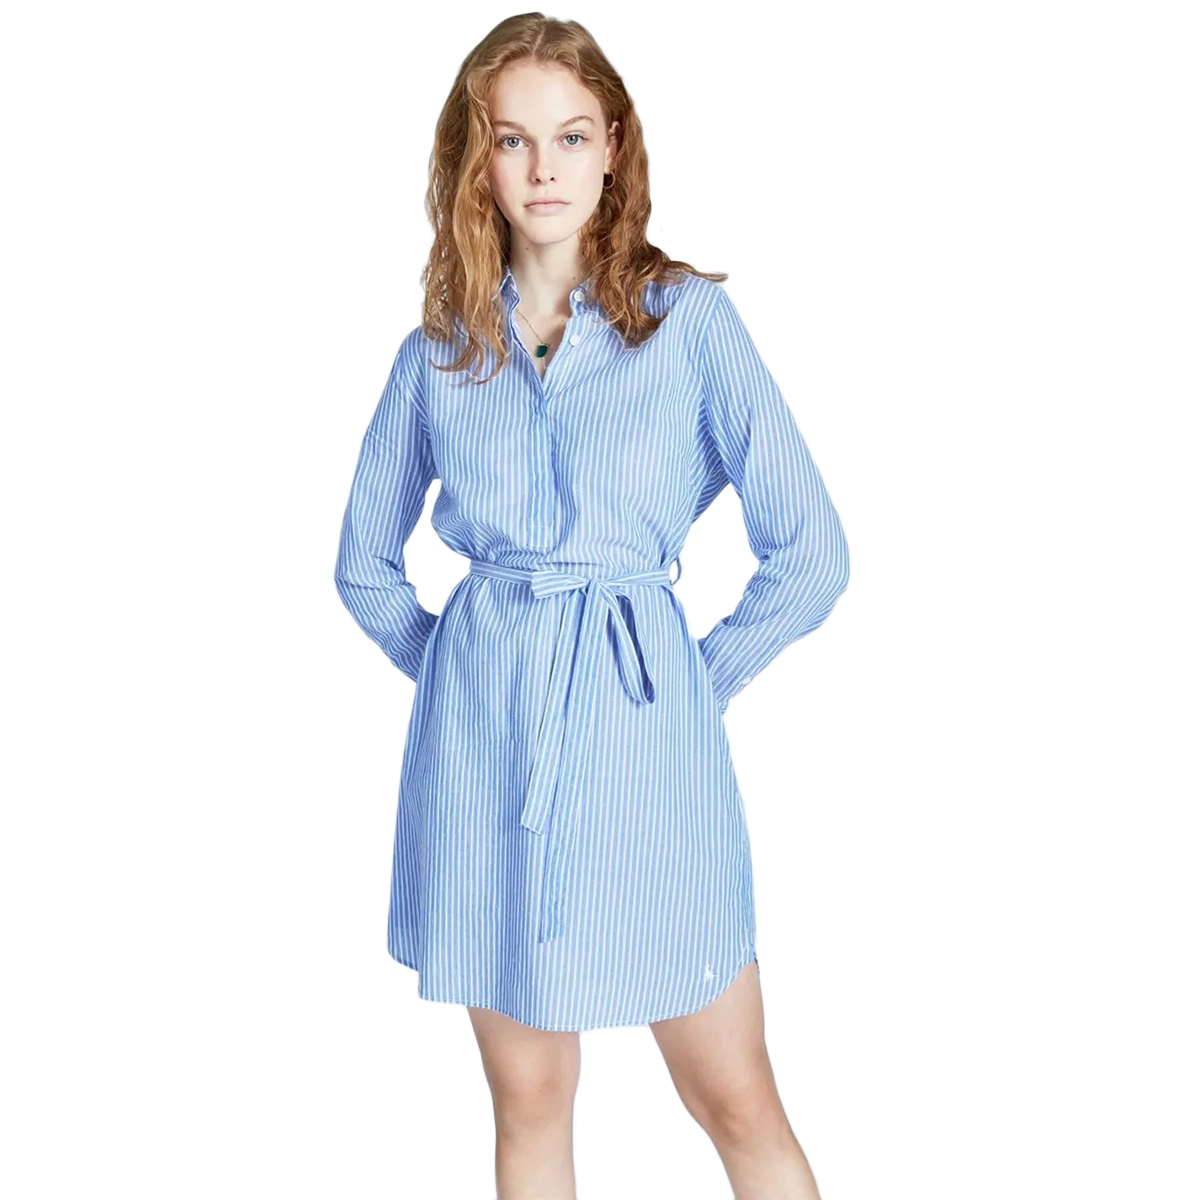 Jack Wills Women's Chelseawood Stripe Button Shirt Dress - Blue, 10